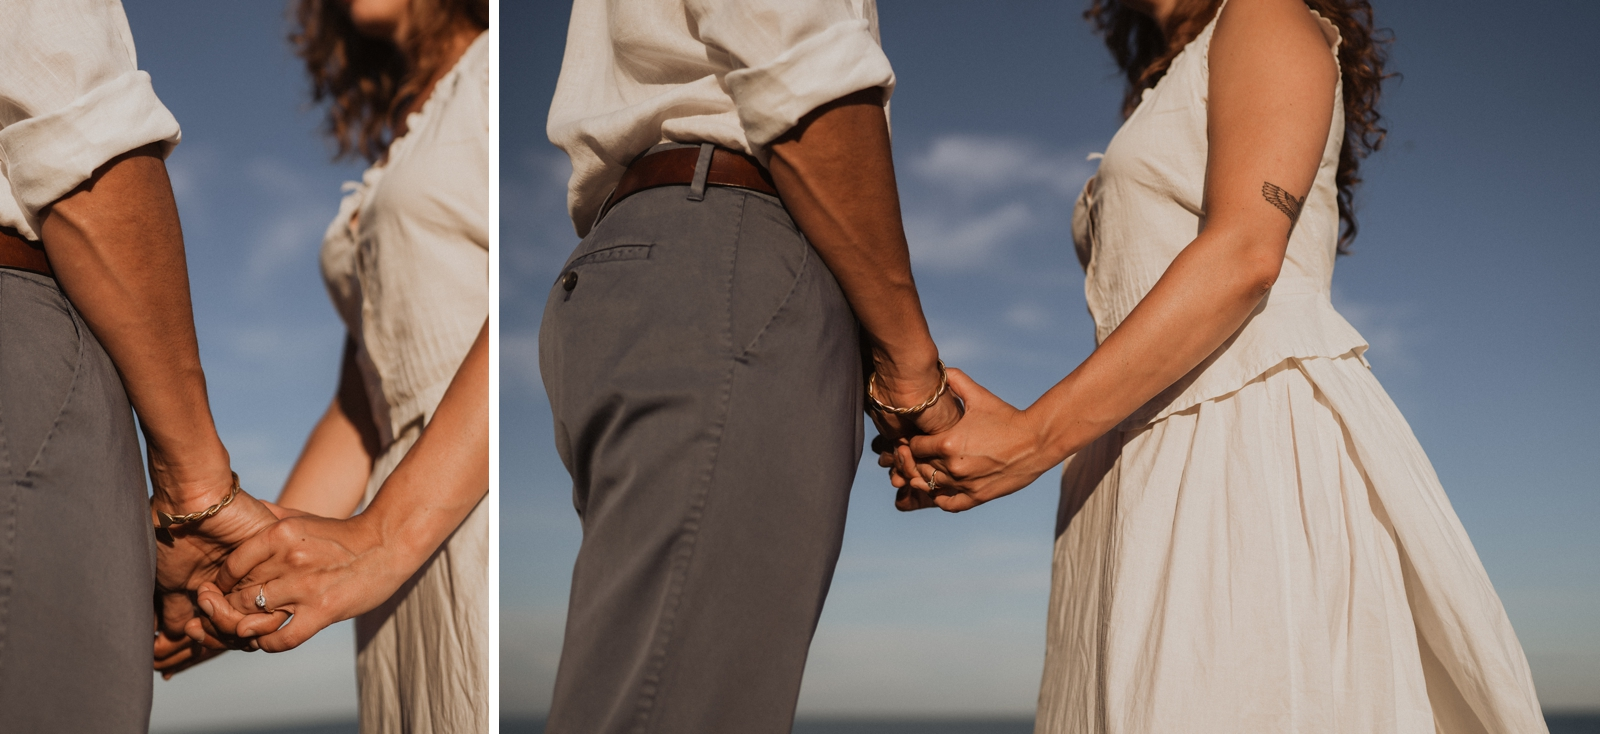 JJP_Nikki & Bud_Shadmoor_Montauk_NY_Cliff Engagement Session31.jpg_blog.jpg